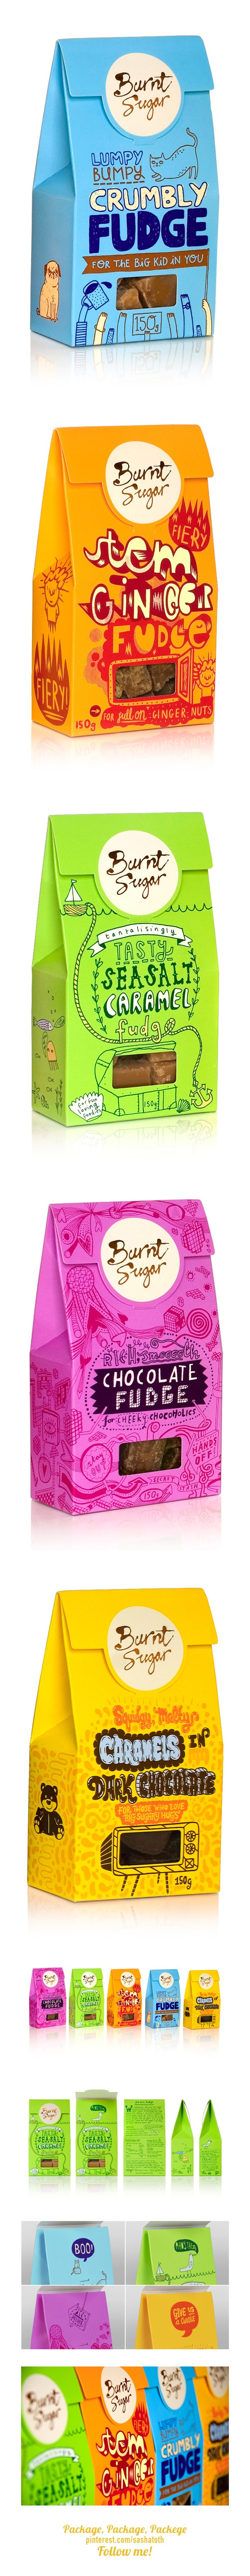 fudge packaging..